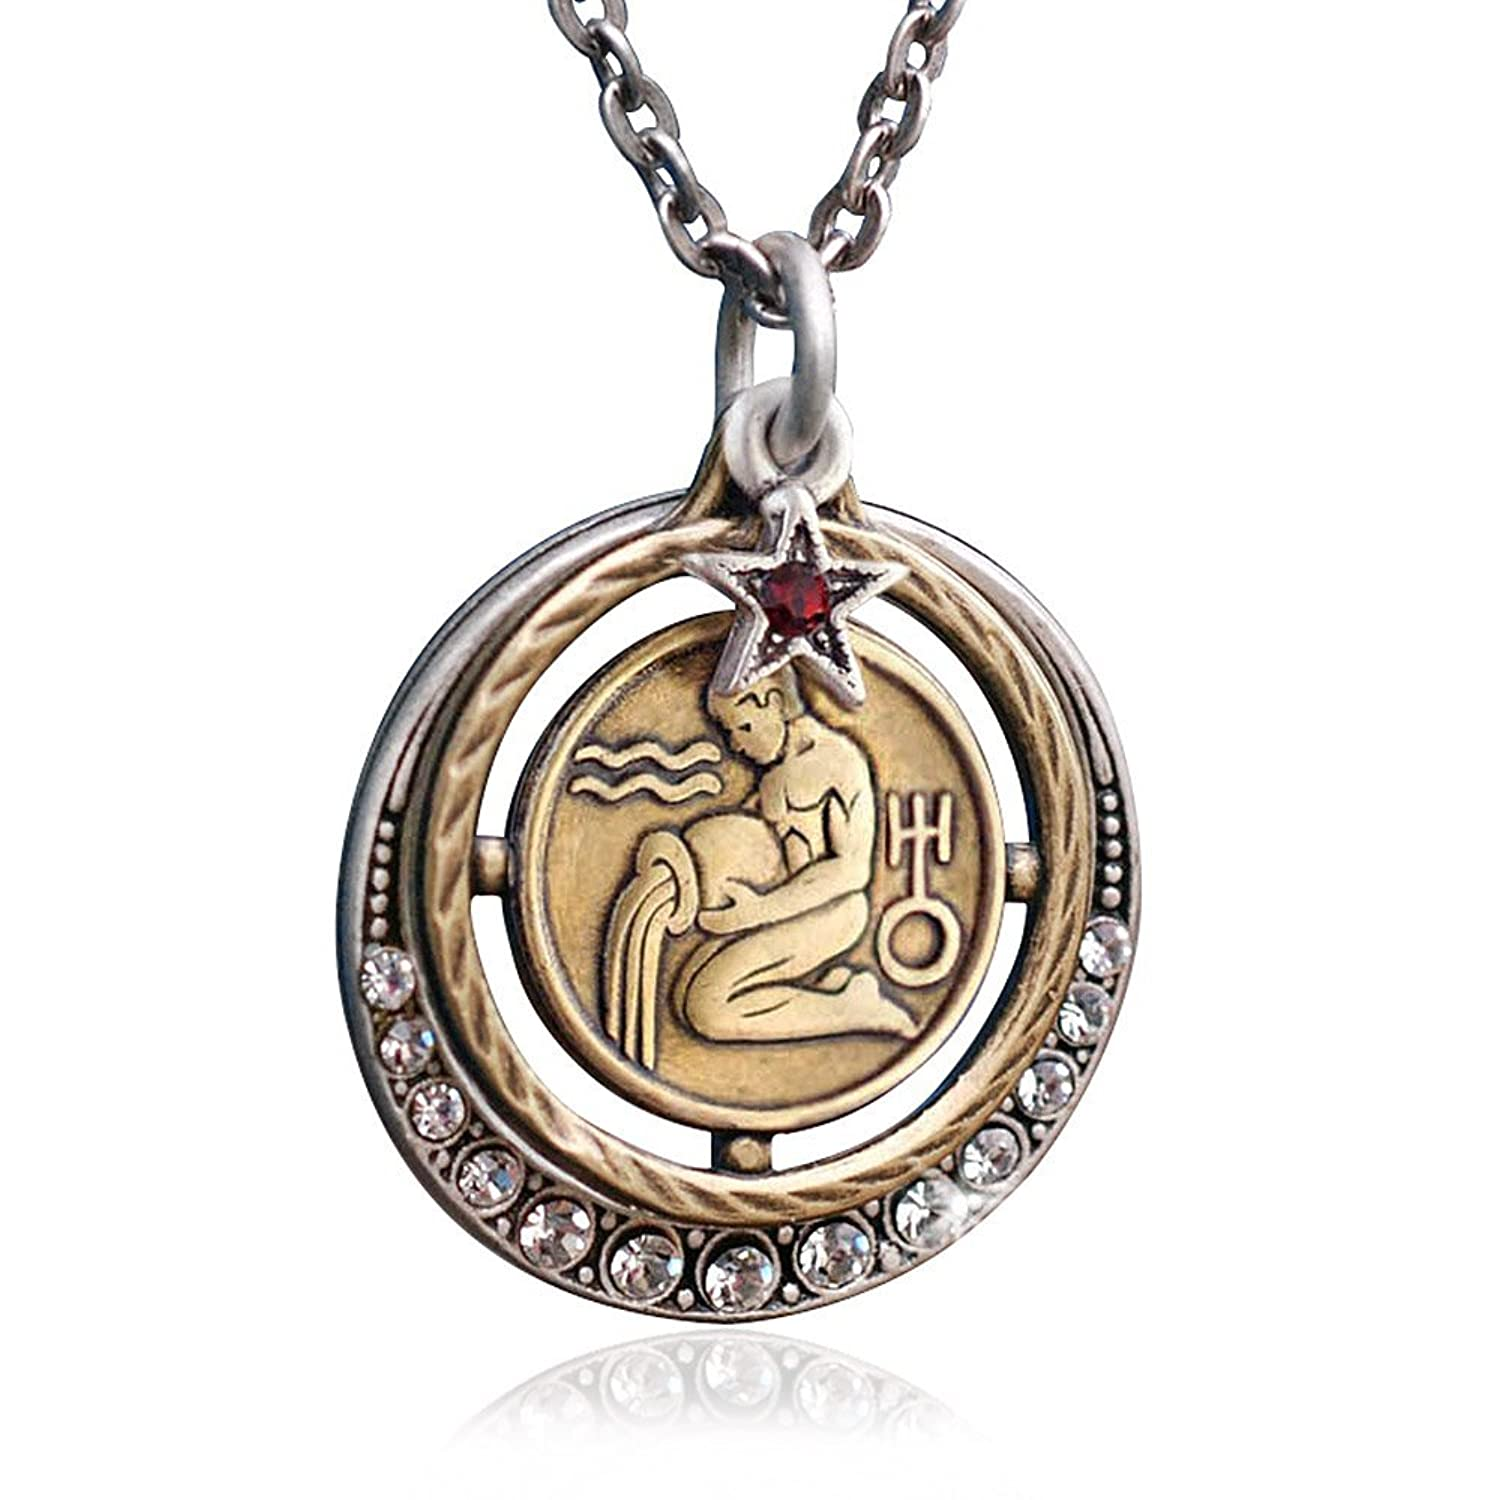 Amazon aquarius zodiac sign astrology pendant necklace amazon aquarius zodiac sign astrology pendant necklace january and february birthday gifts jewelry mozeypictures Images